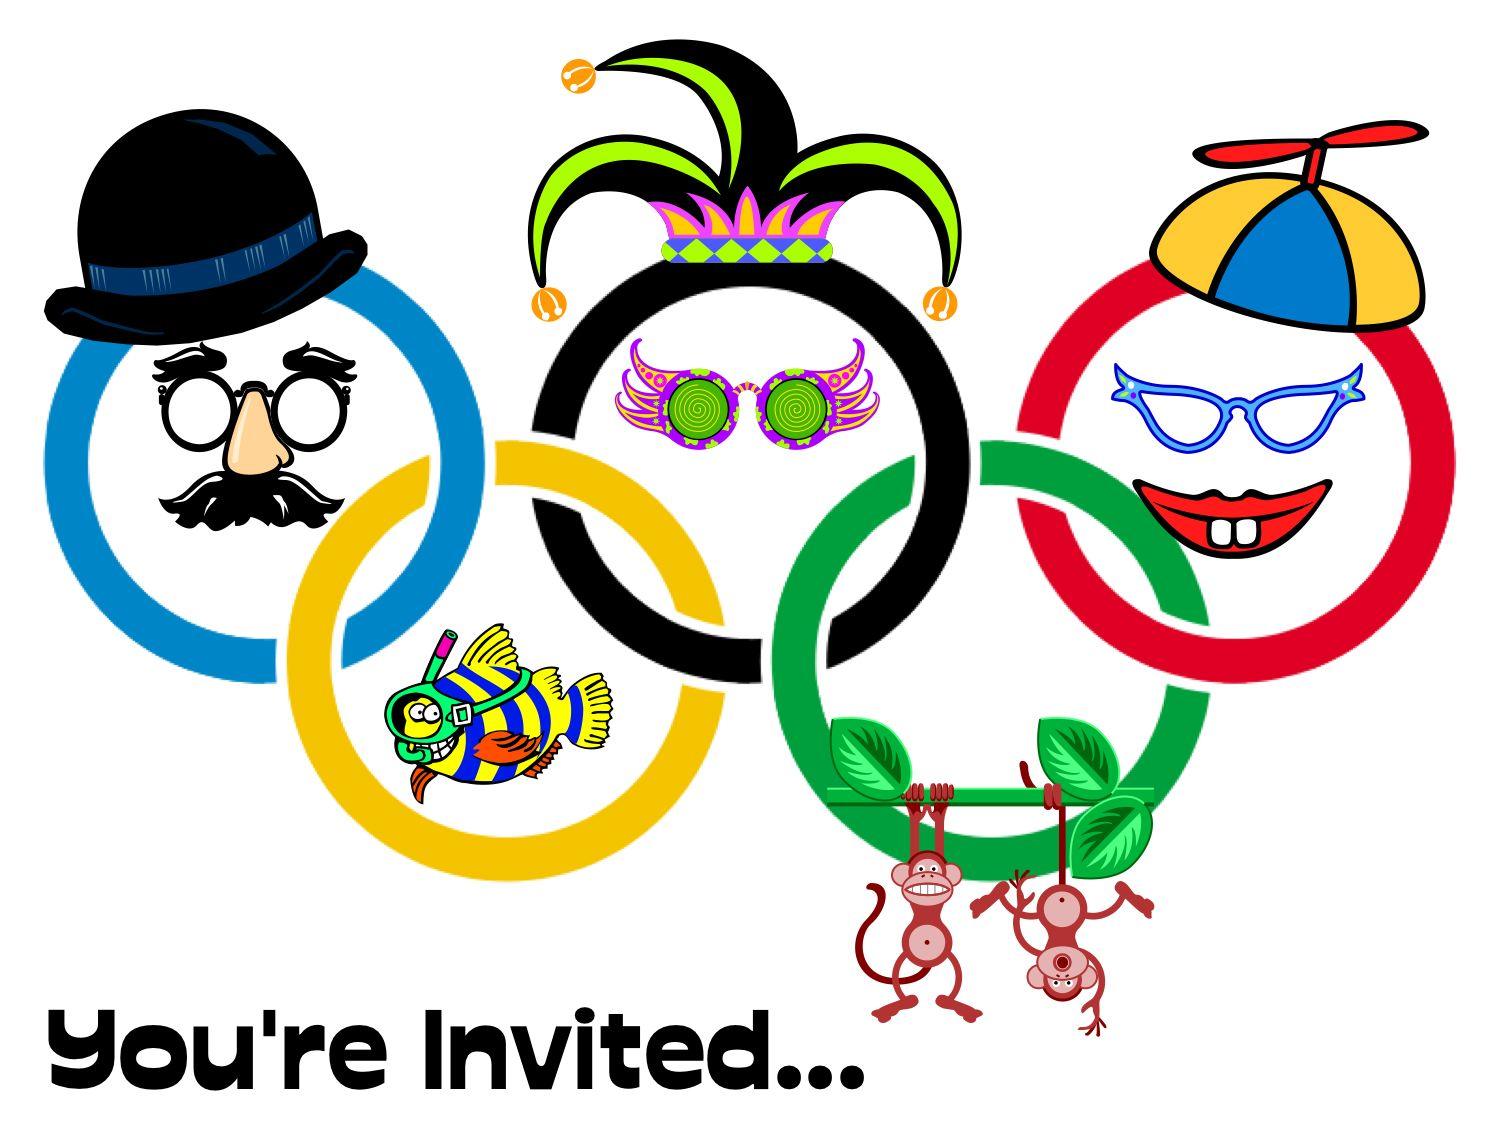 Olympic Games clipart olampic #12